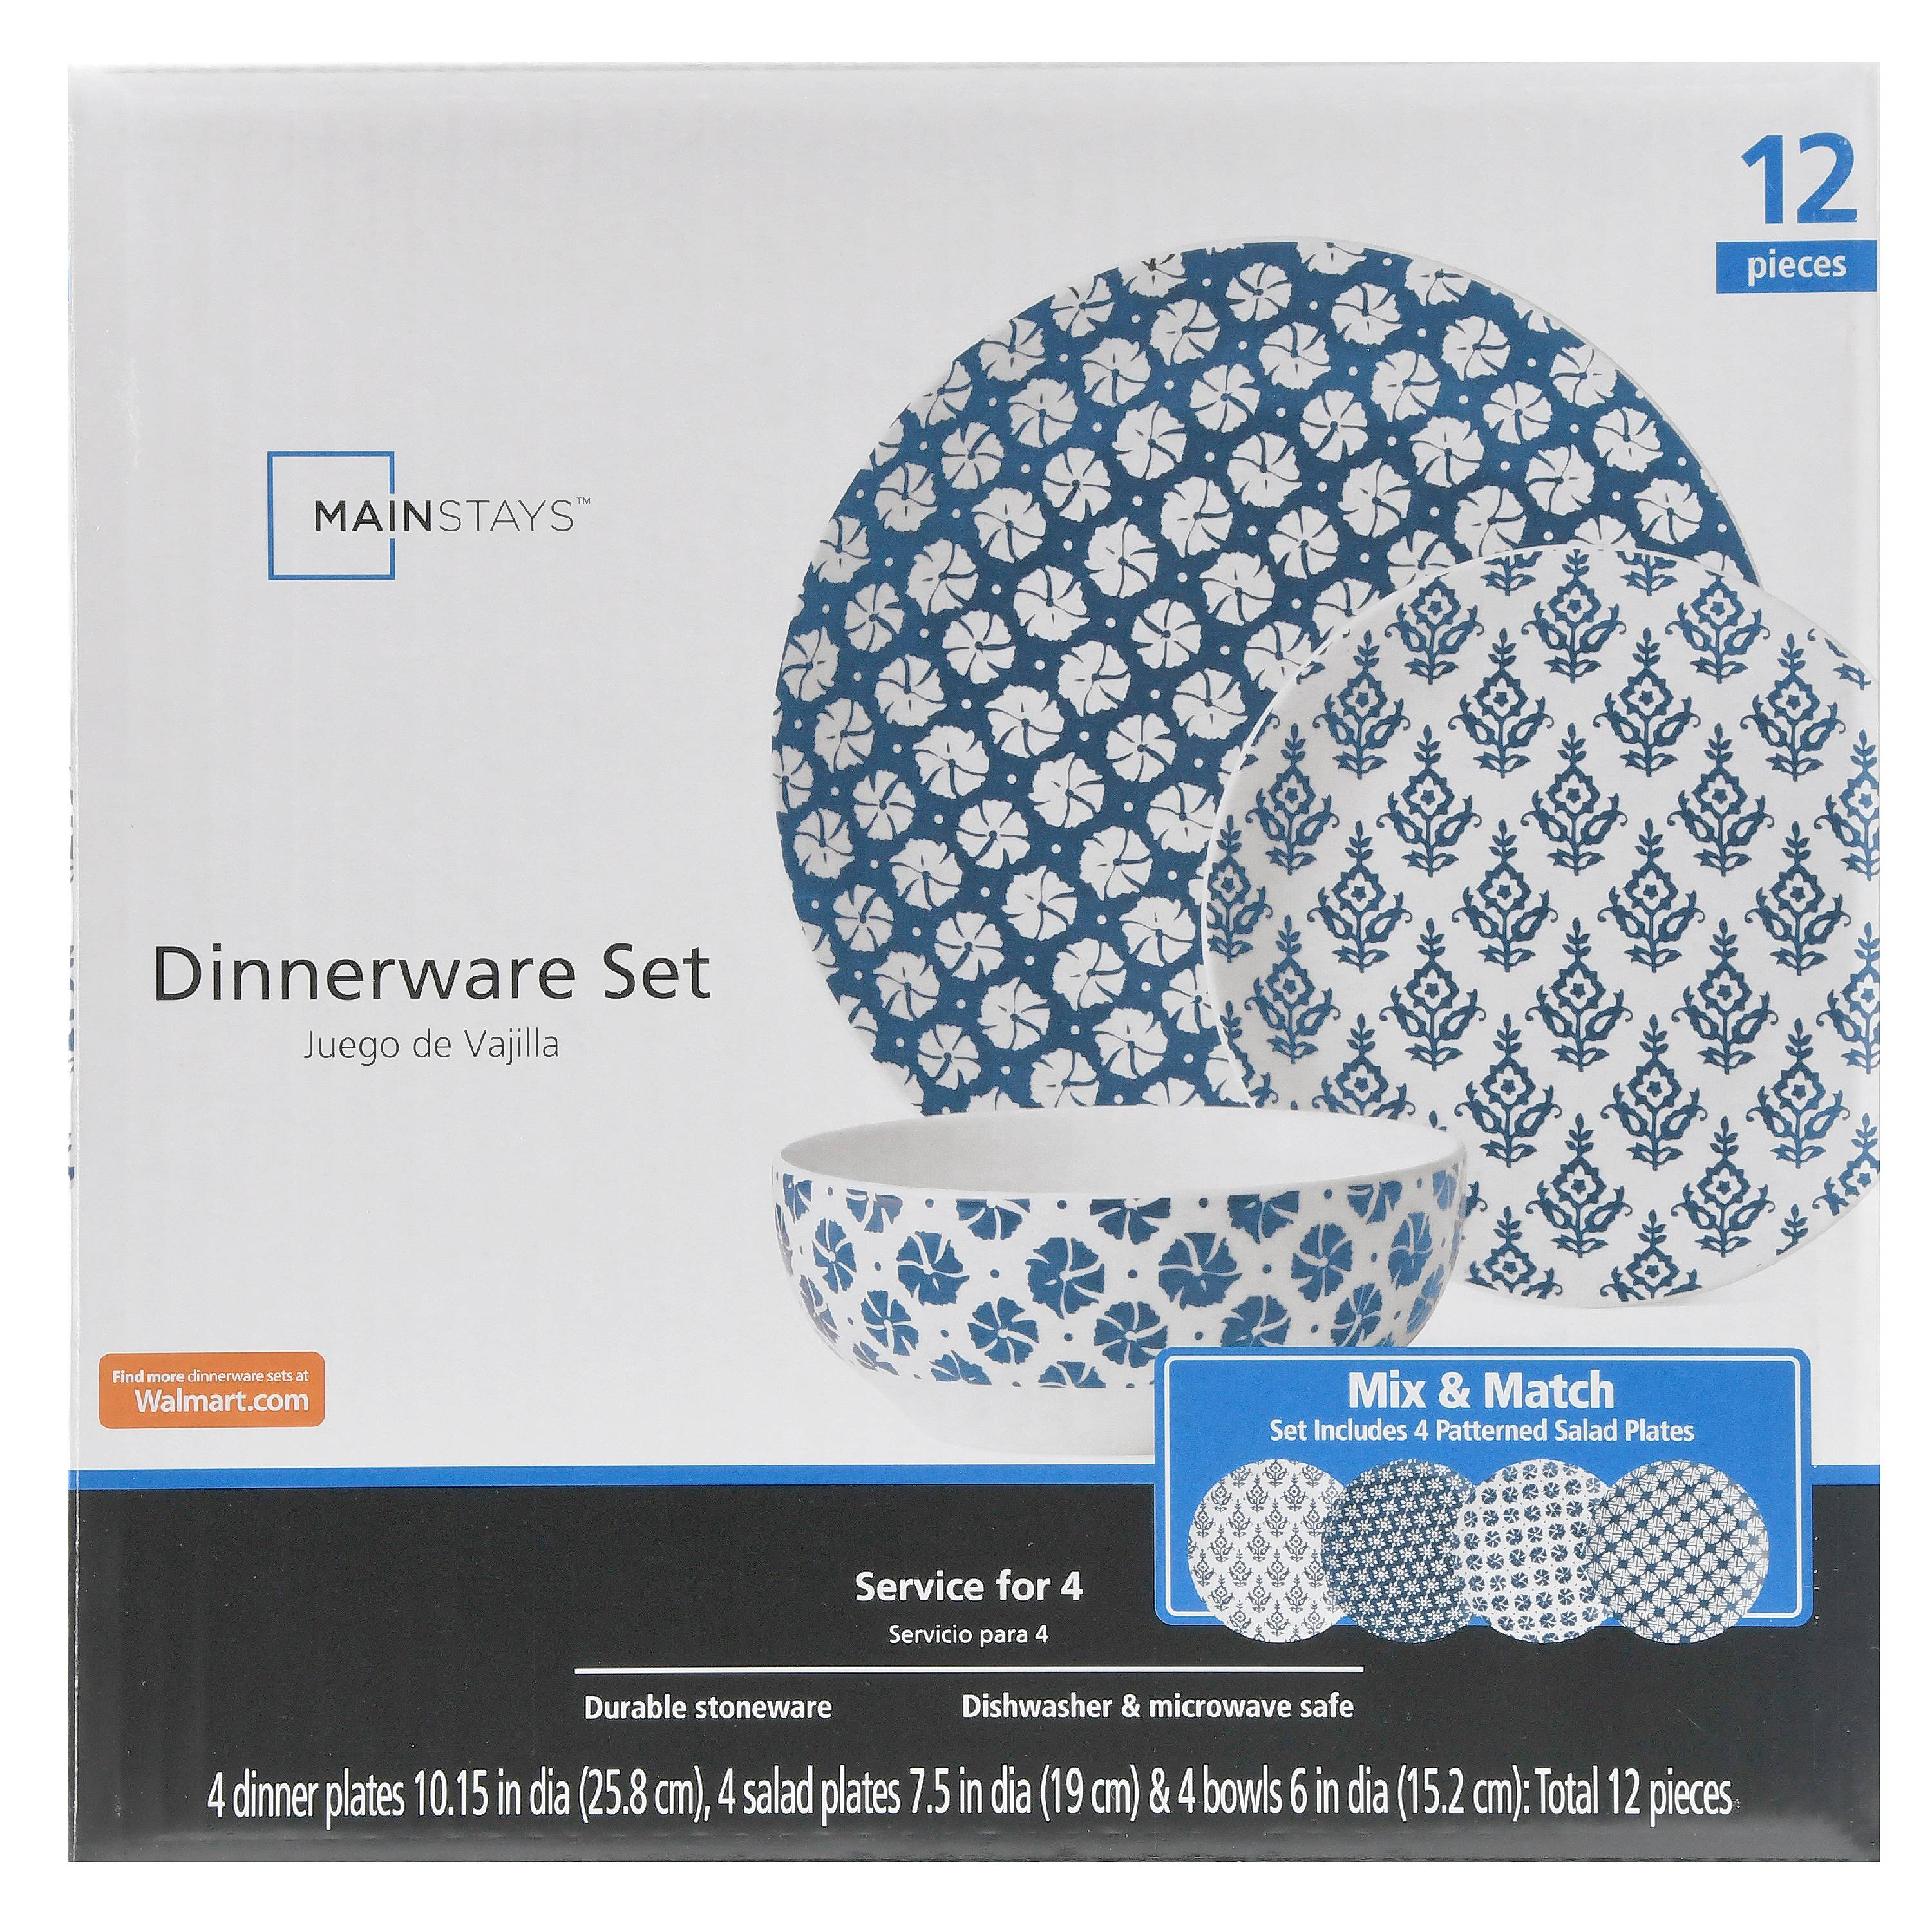 Mainstays 12 piece Stoneware Dinnerware Set, Navy Print